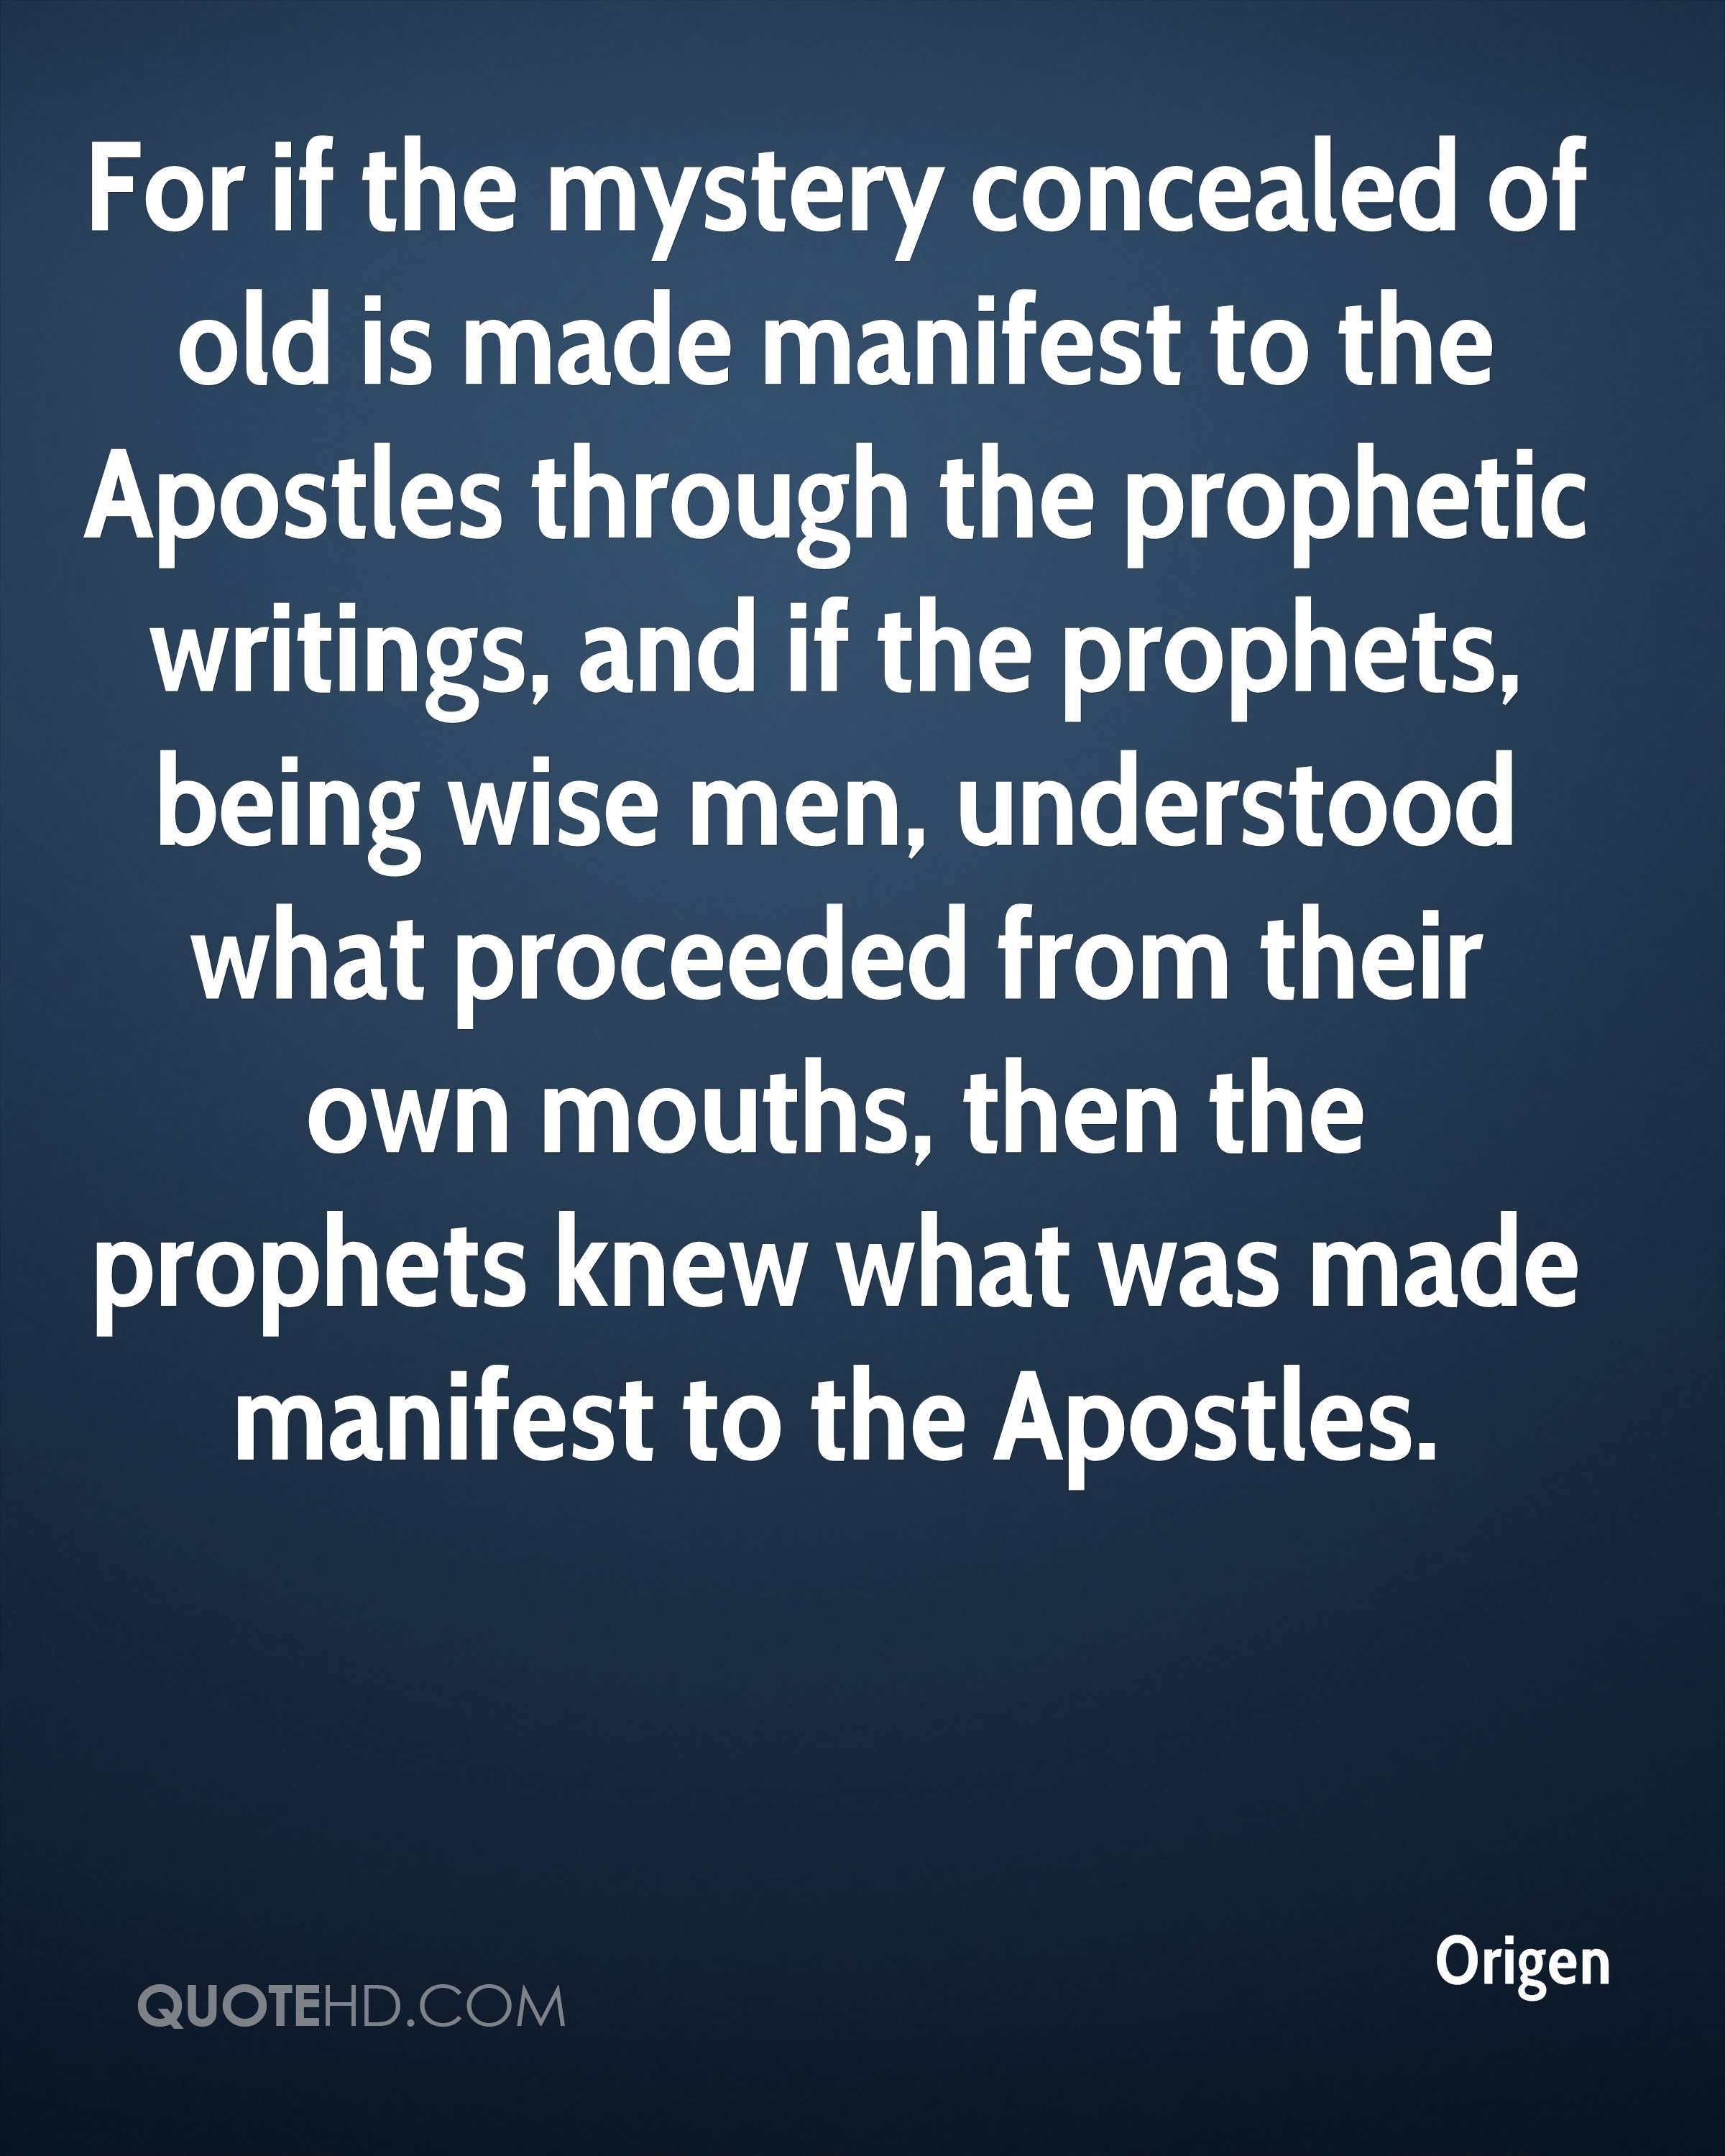 For if the mystery concealed of old is made manifest to the Apostles through the prophetic writings, and if the prophets, being wise men, understood what proceeded from their own mouths, then the prophets knew what was made manifest to the Apostles.